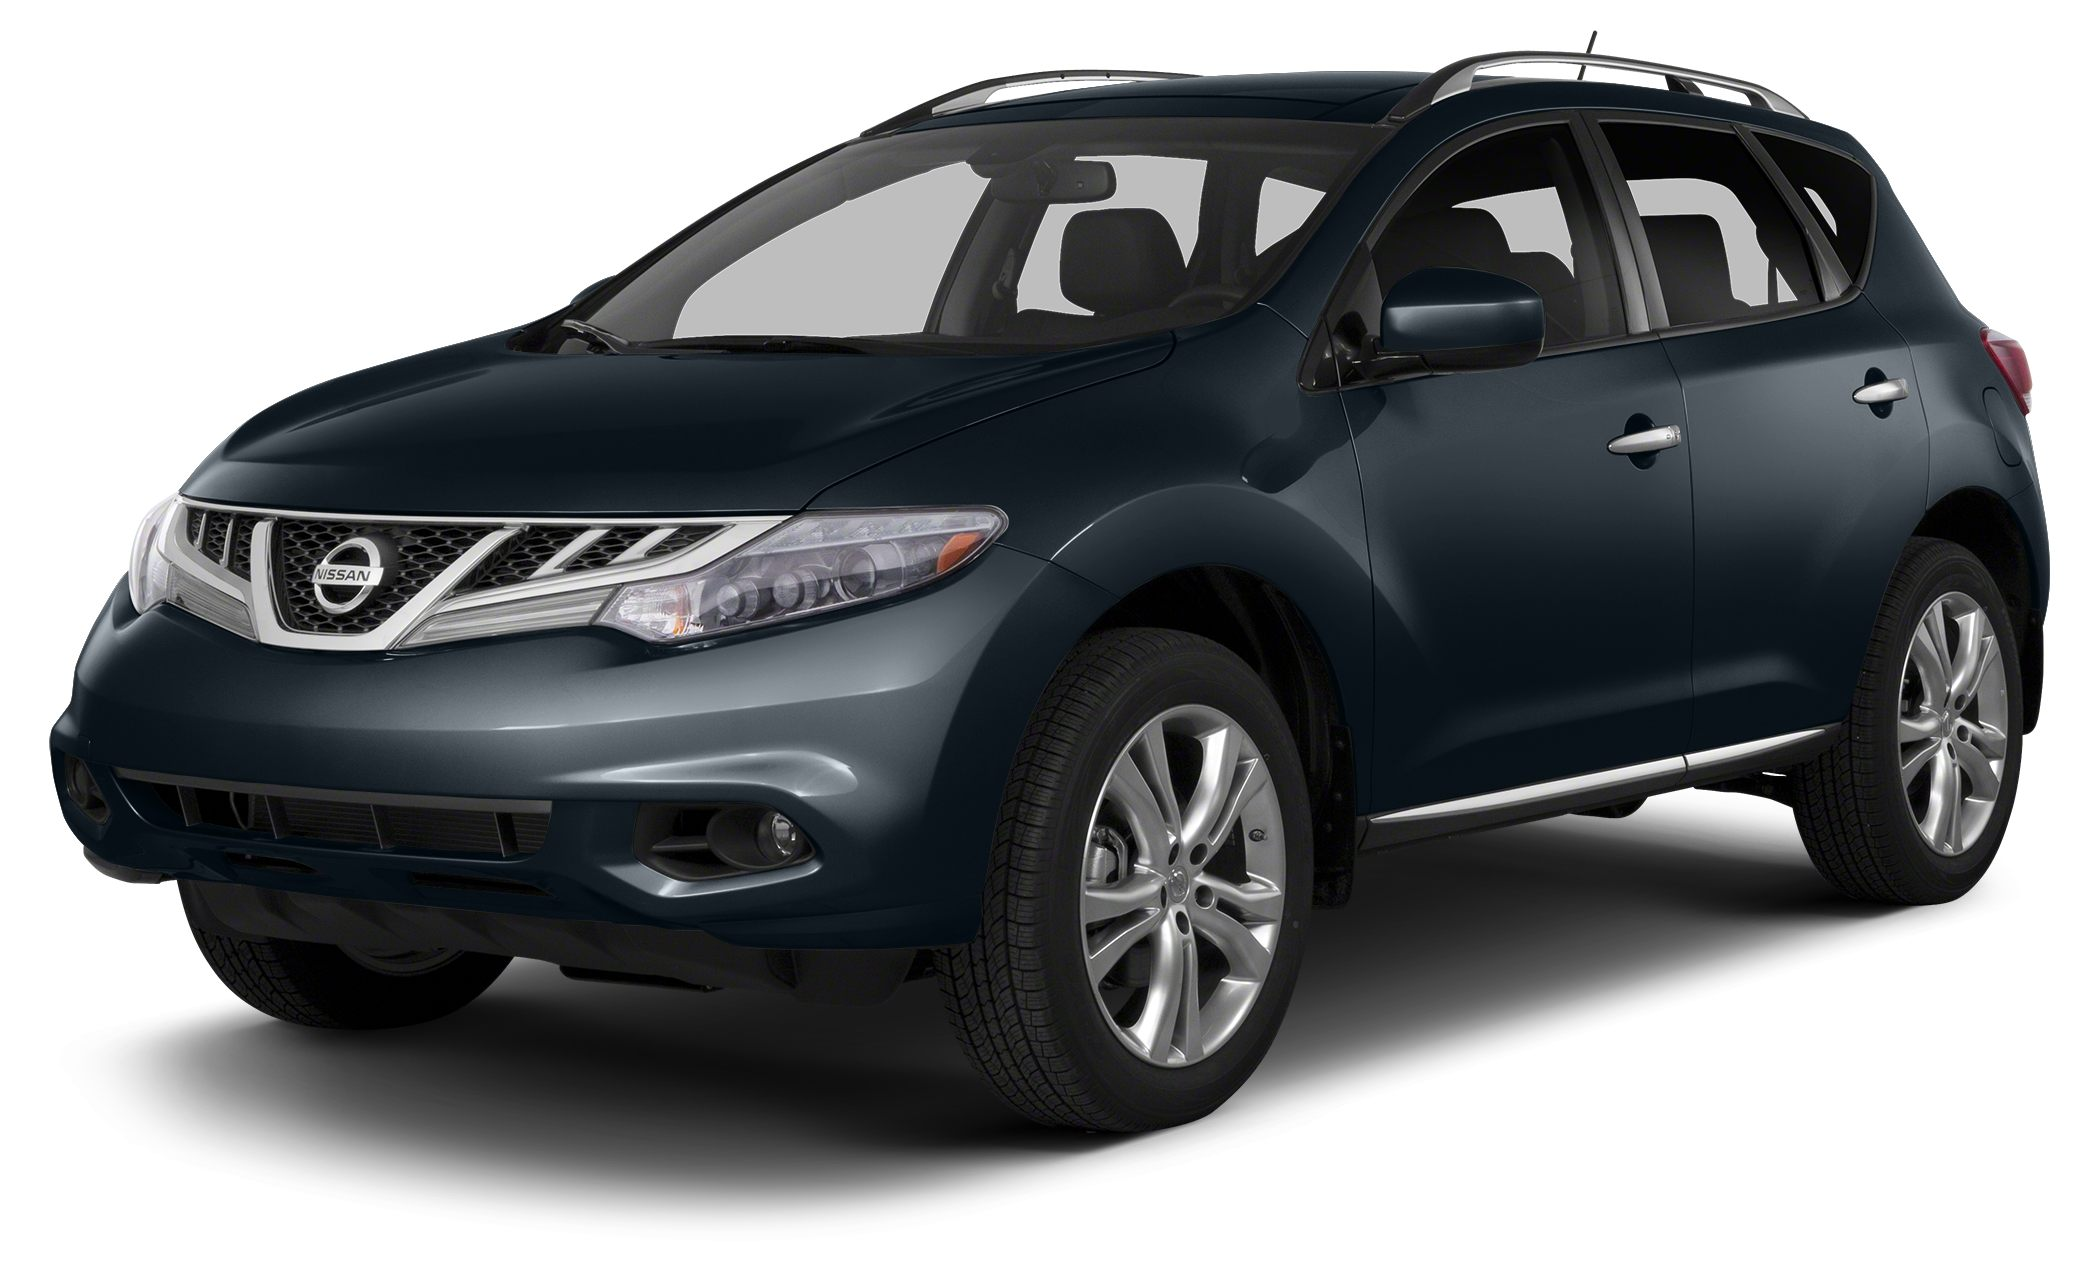 2013 Nissan Murano SL NISSAN CERTIFIED 7YEAR100000 MILE POWERTRAIN CLEAN CARFAX ONE OWNE